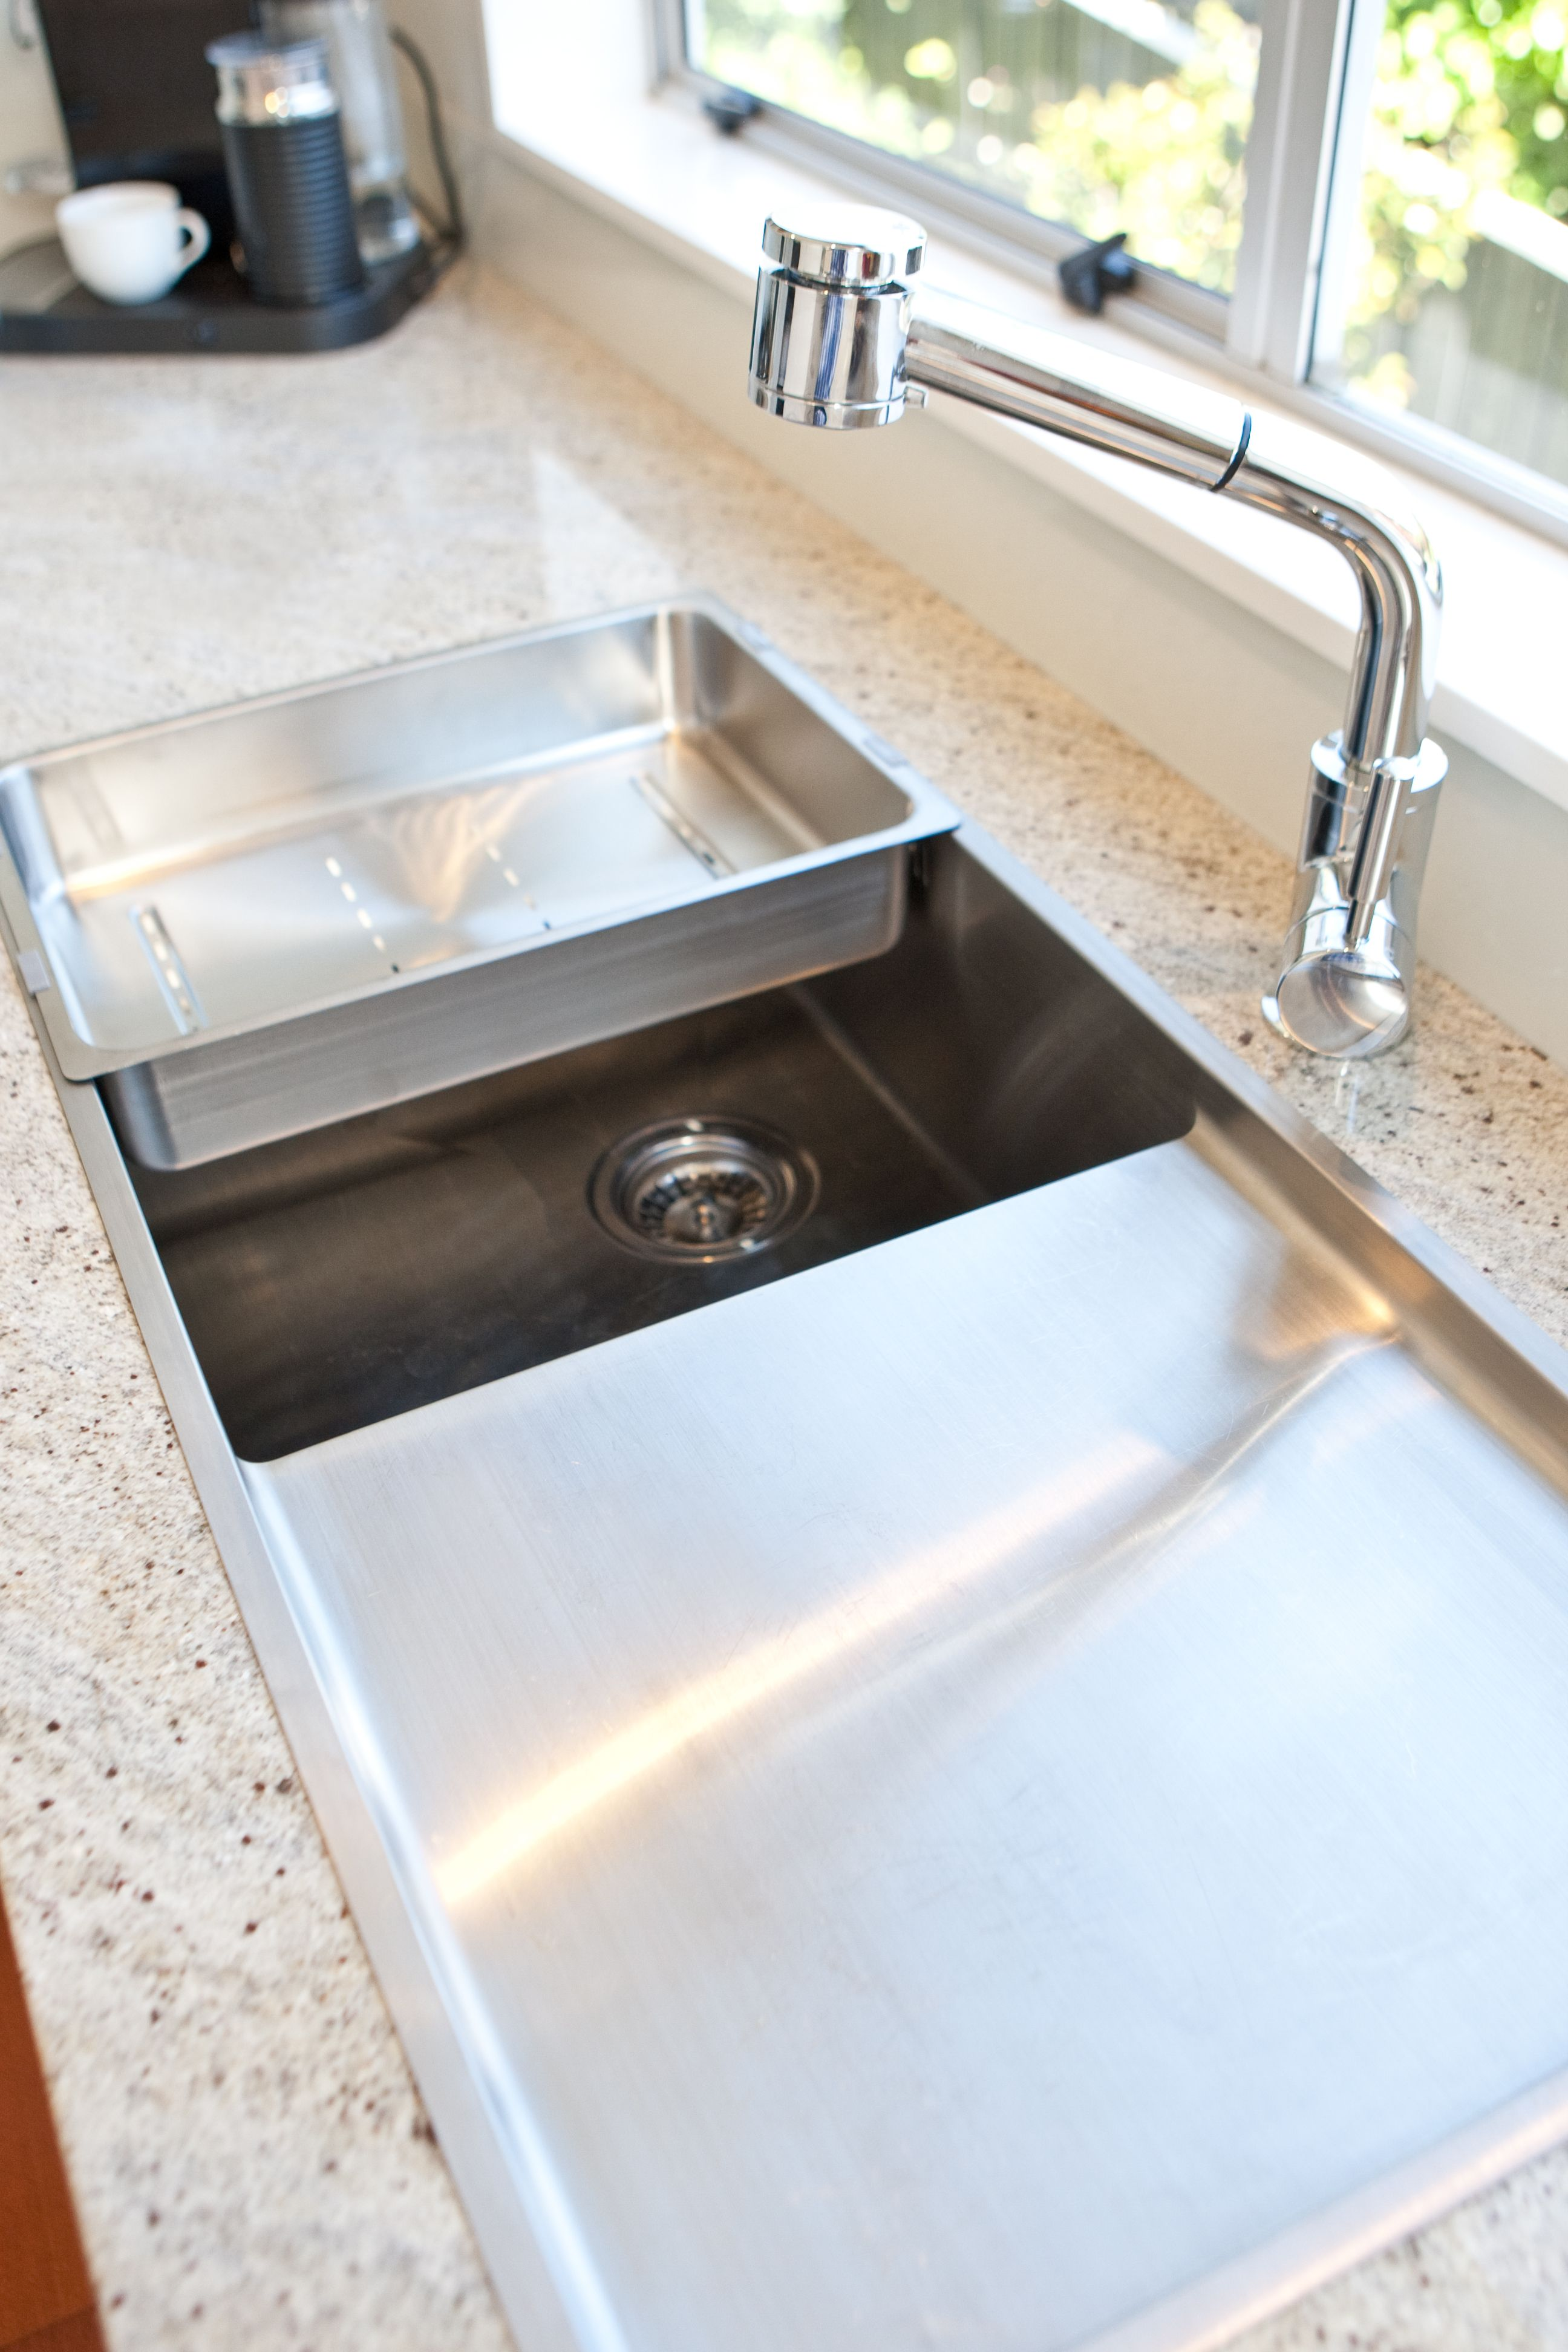 Heritage Hardware Robiq Grande Sink With Drainer Top Mounted Into Kashmir White Grani Kitchen Countertops Prices Unique Kitchen Countertops Kitchen Sink Design